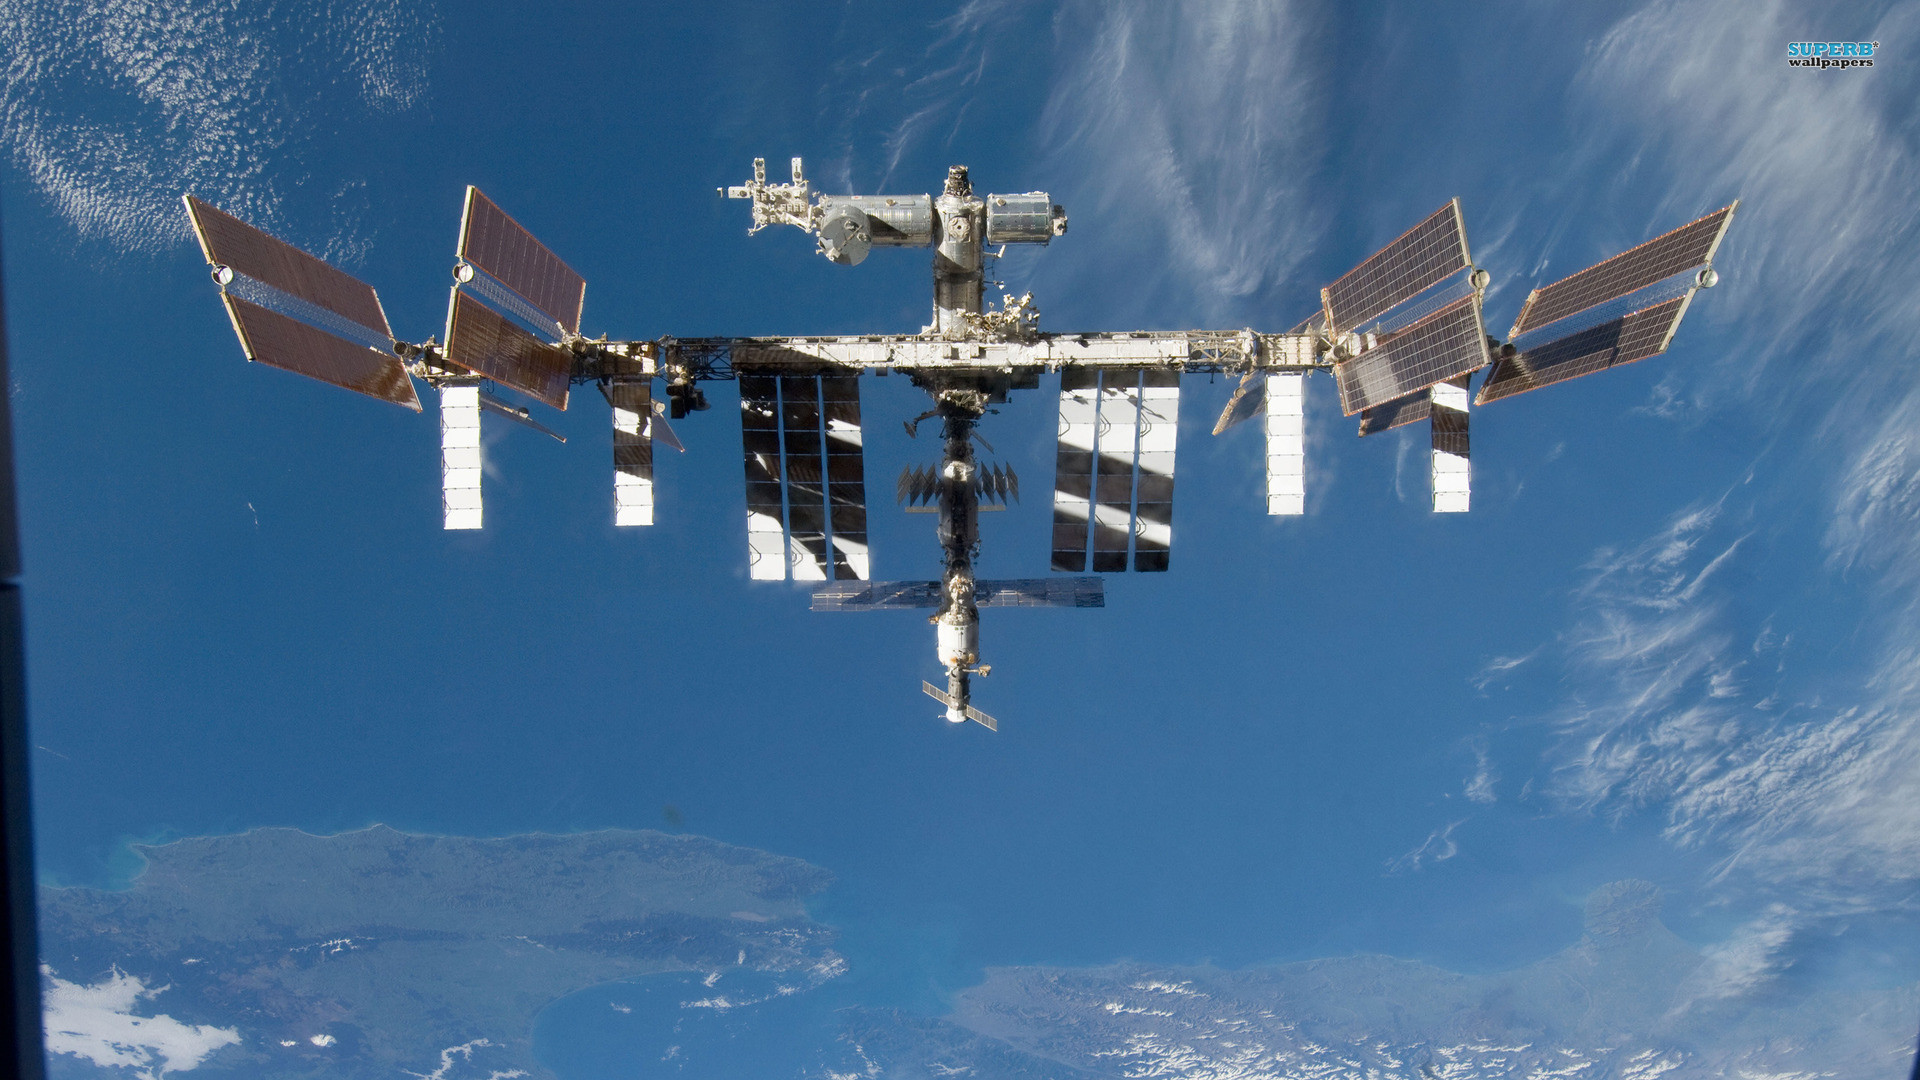 Iss Wallpapers Hd: International Space Station Wallpaper (65+ Images